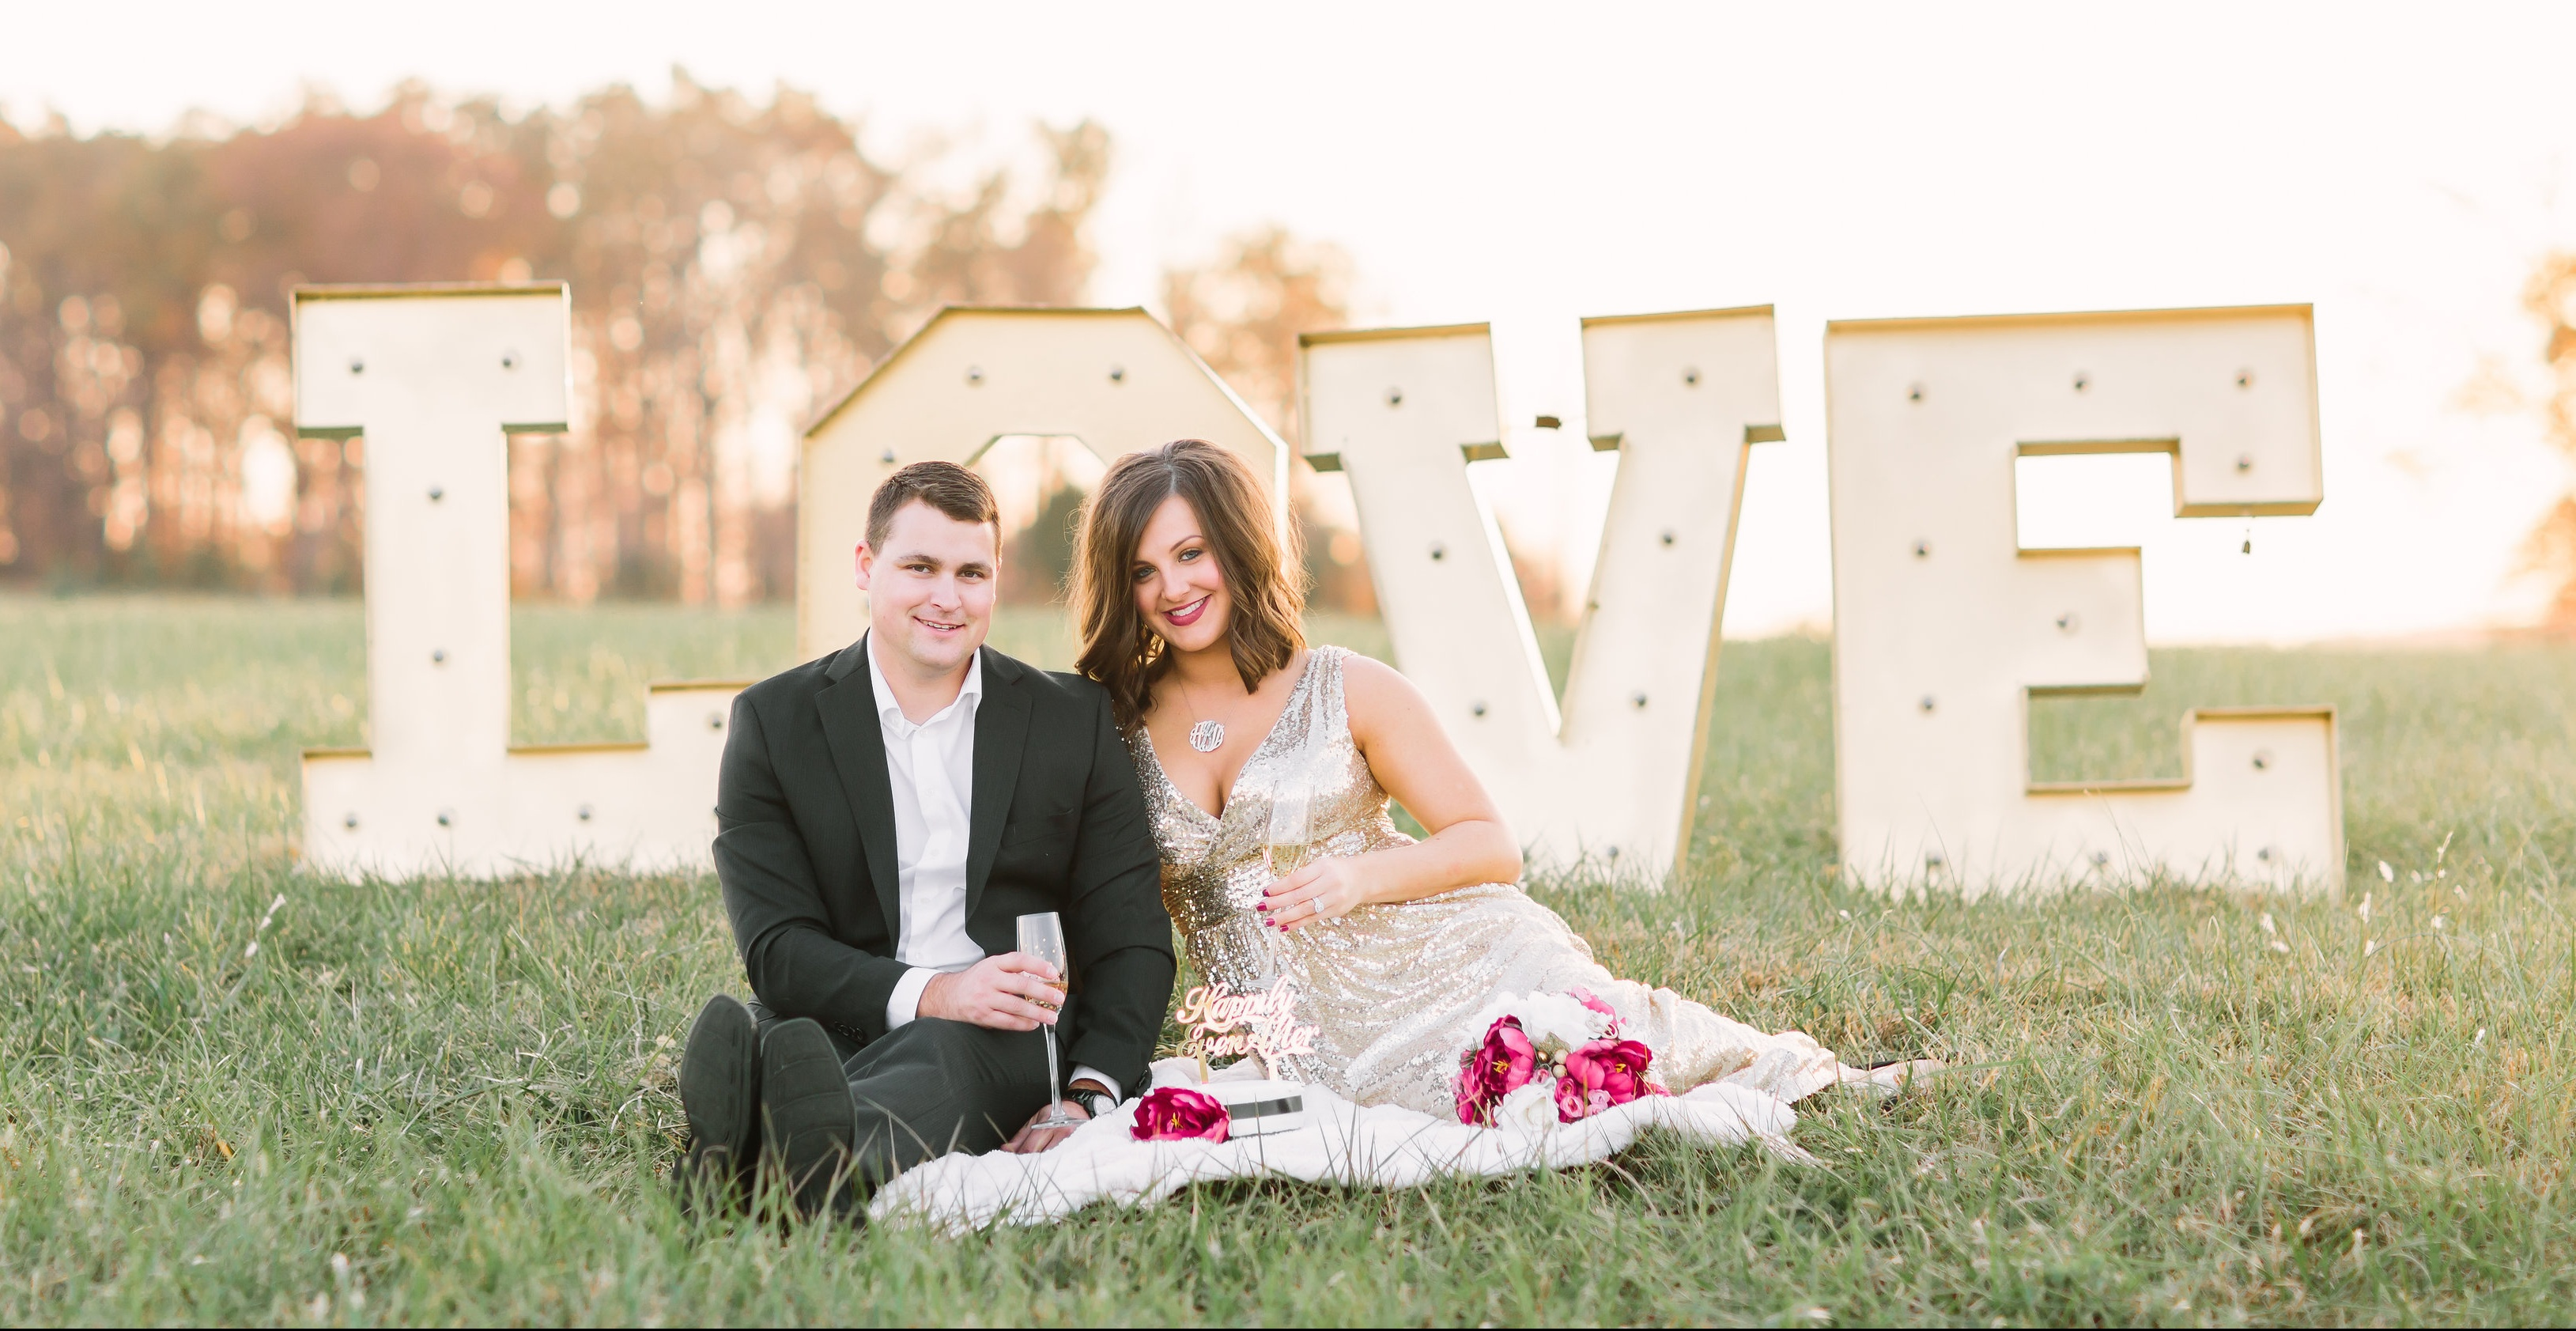 Kentucky Bride   New Year's 1st Anniversary Feature